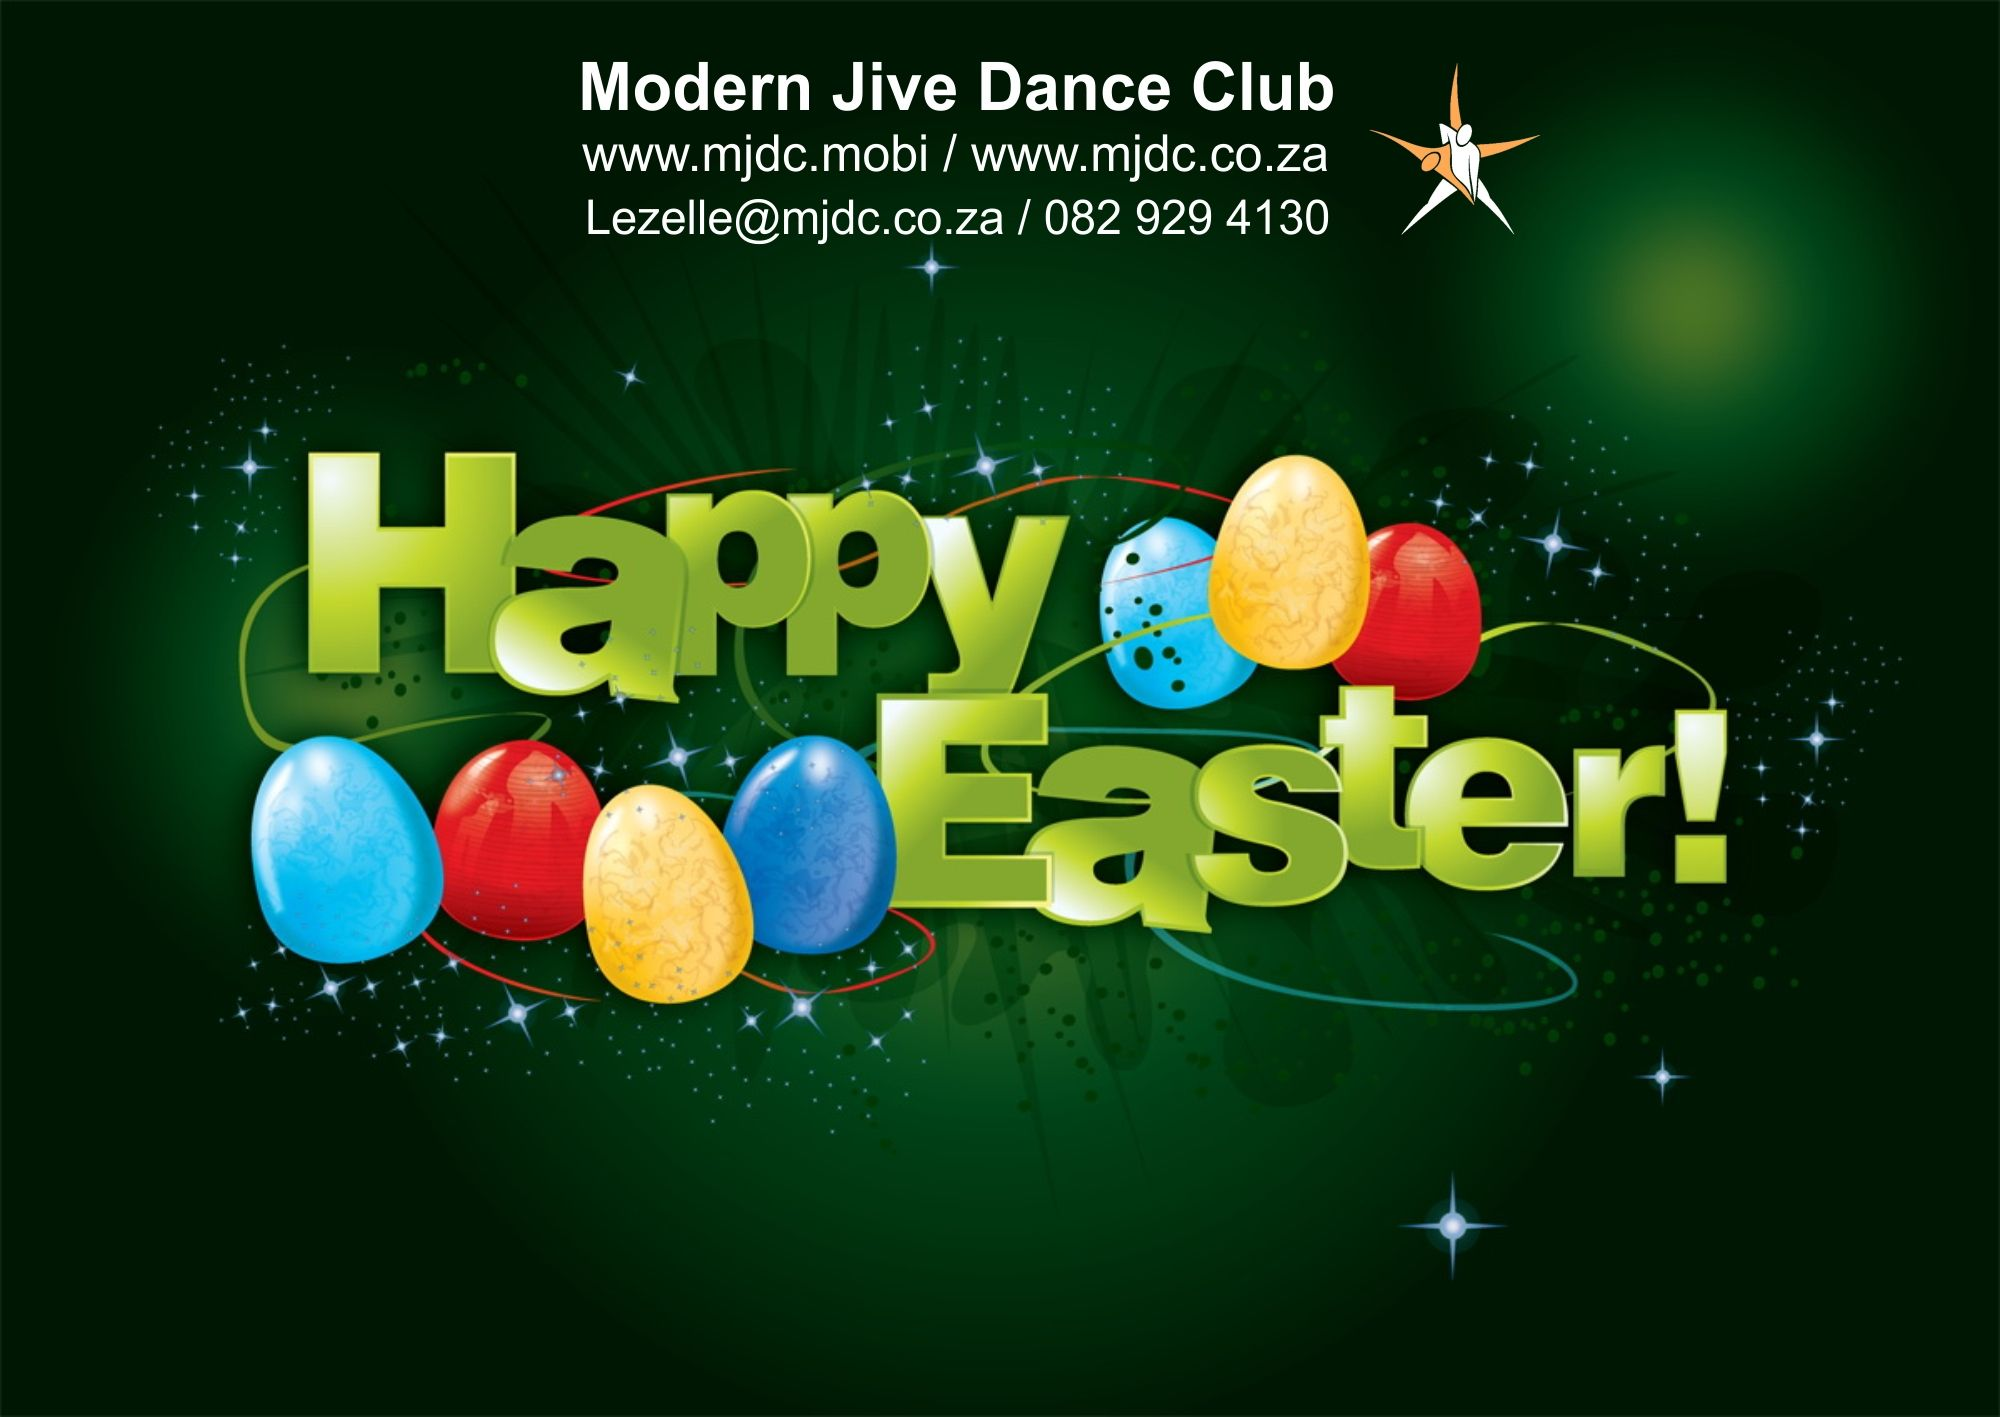 Exciting busy easter weekend for mjdc dj lighting dance make a happy easter gift certificate by filling in your info in the blank happy easter gift certificate template provided negle Images